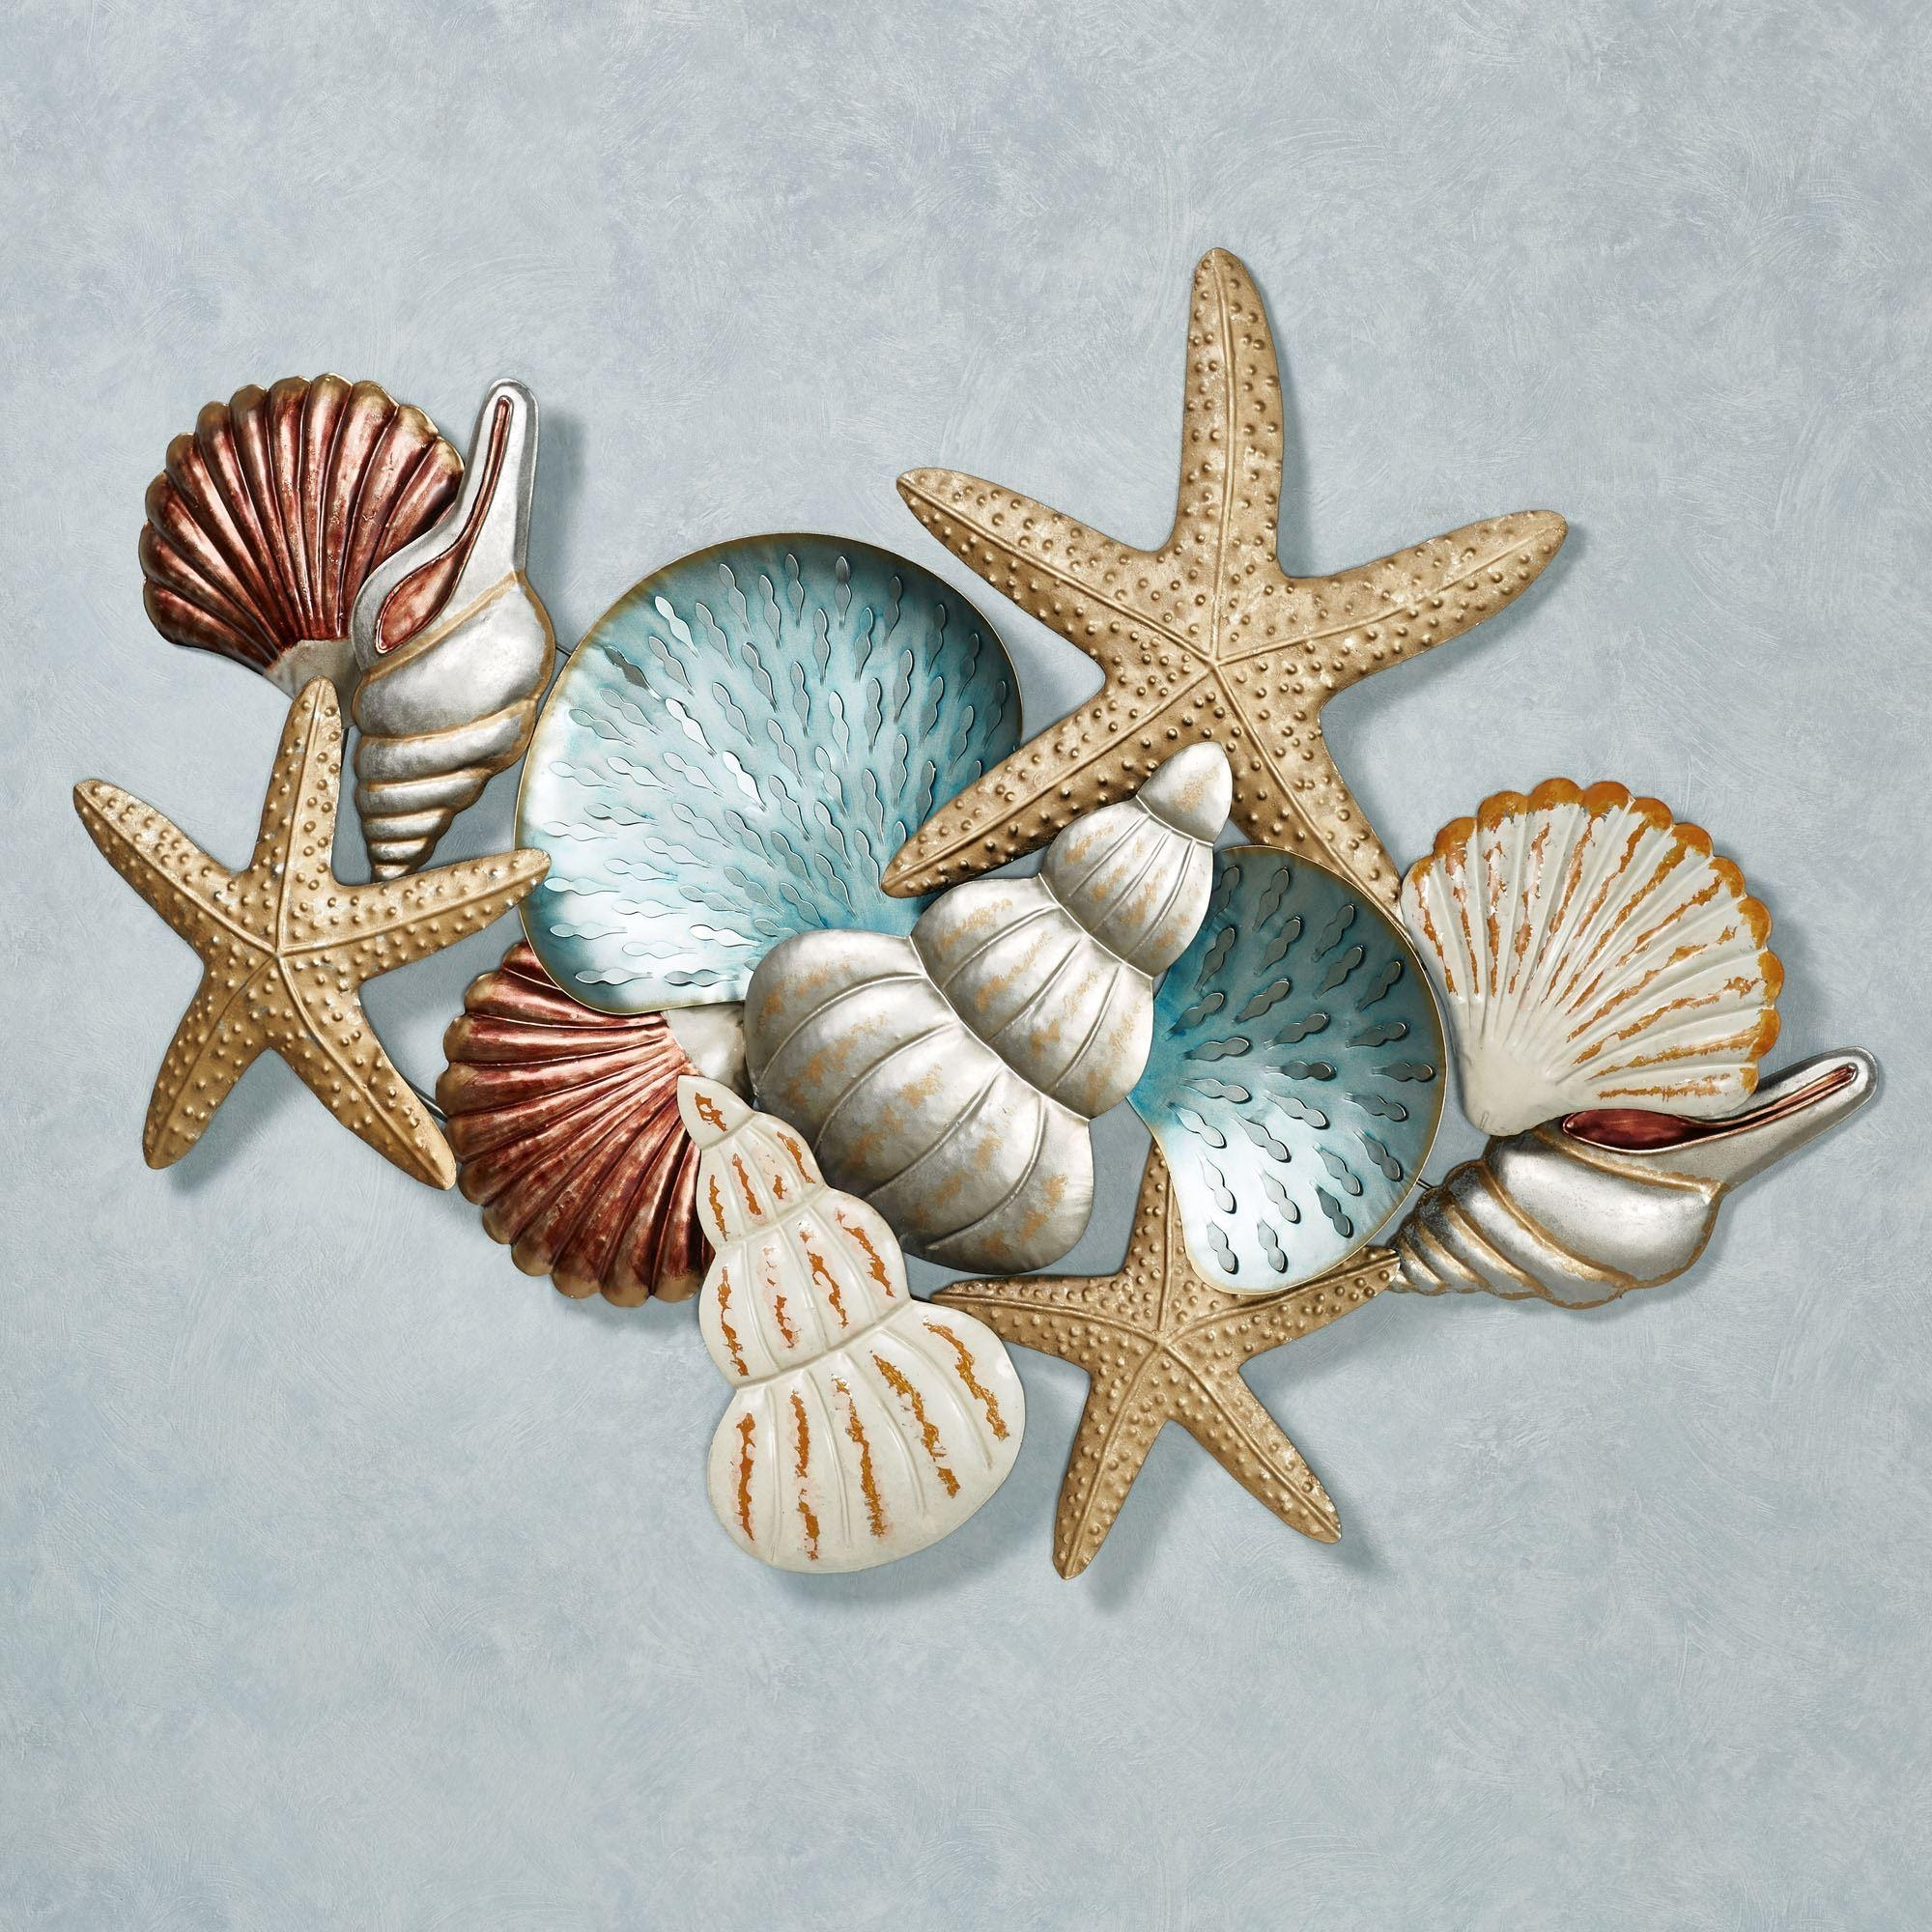 Ocean Collage Metal Wall Art Regarding Metallic Wall Art (View 13 of 20)